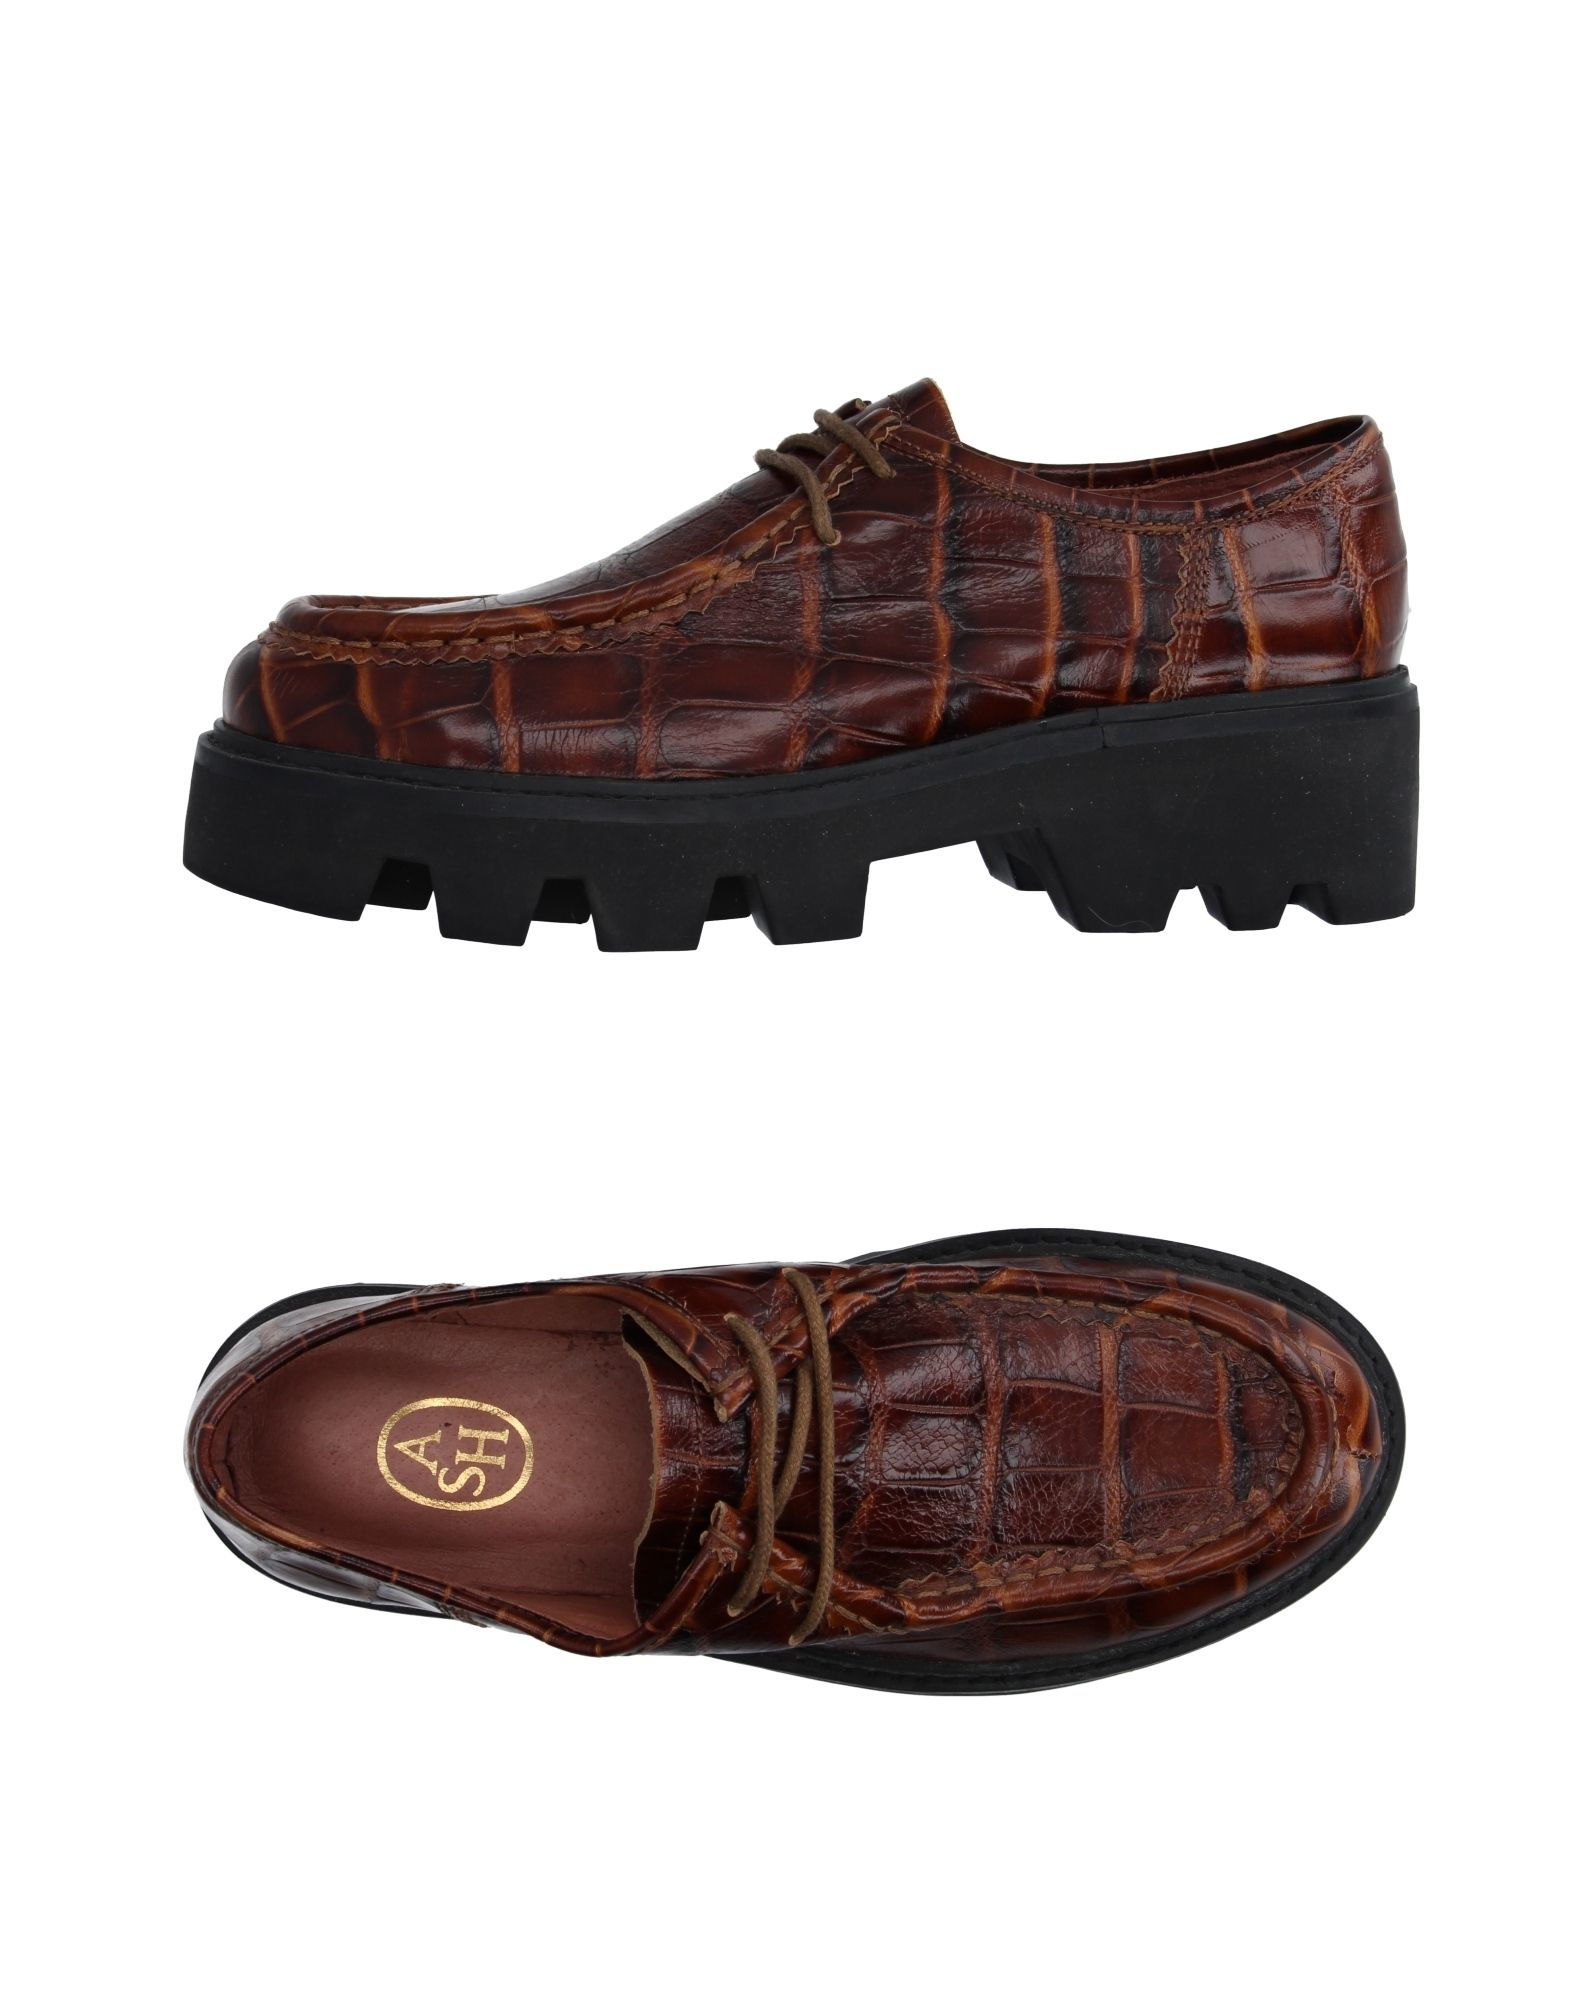 Fossil Shoe Careers Uk